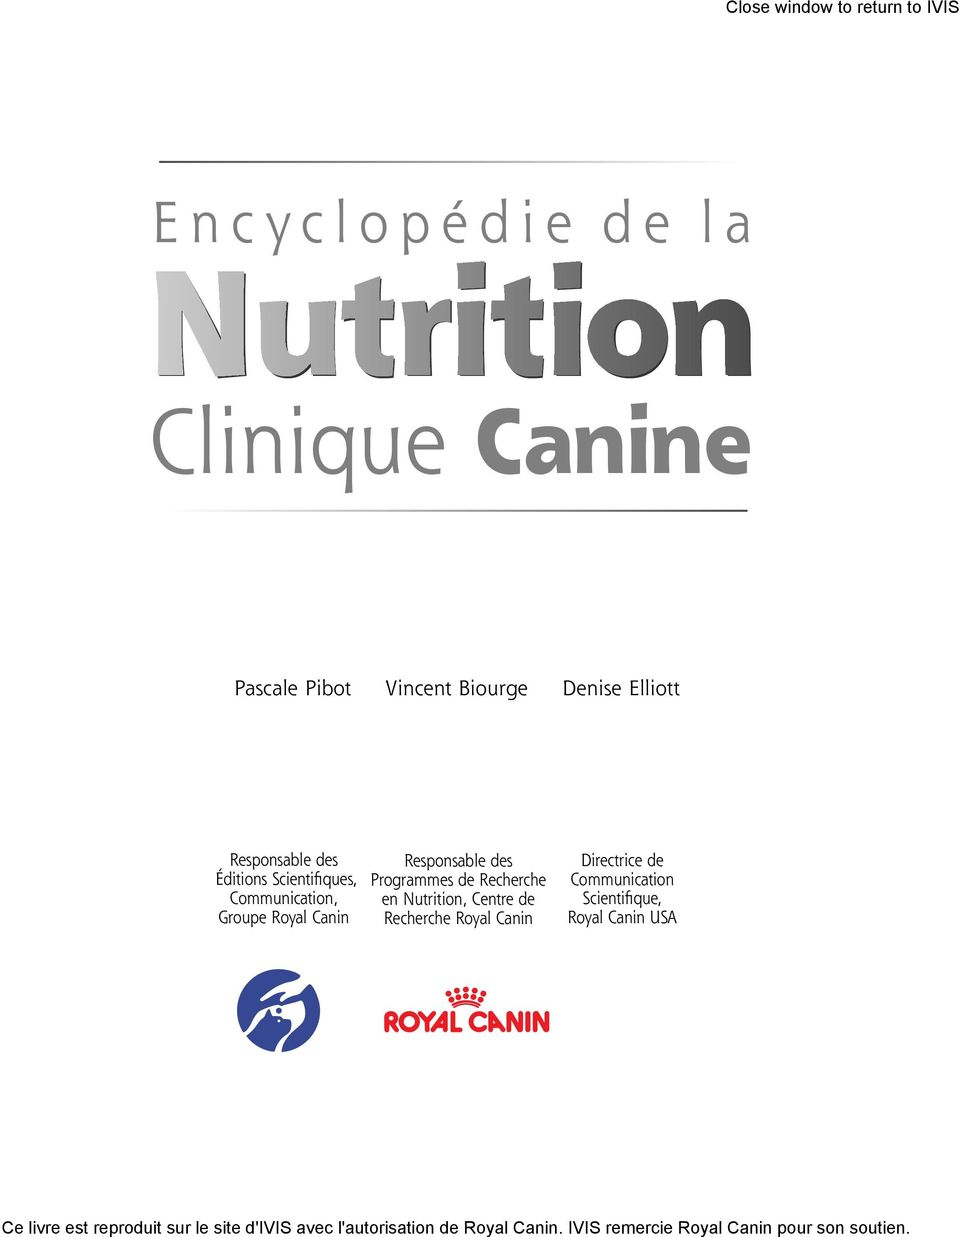 Recherche en Nutrition, Centre de Recherche Royal Canin Directrice de Communication Scientifique, Royal Canin USA